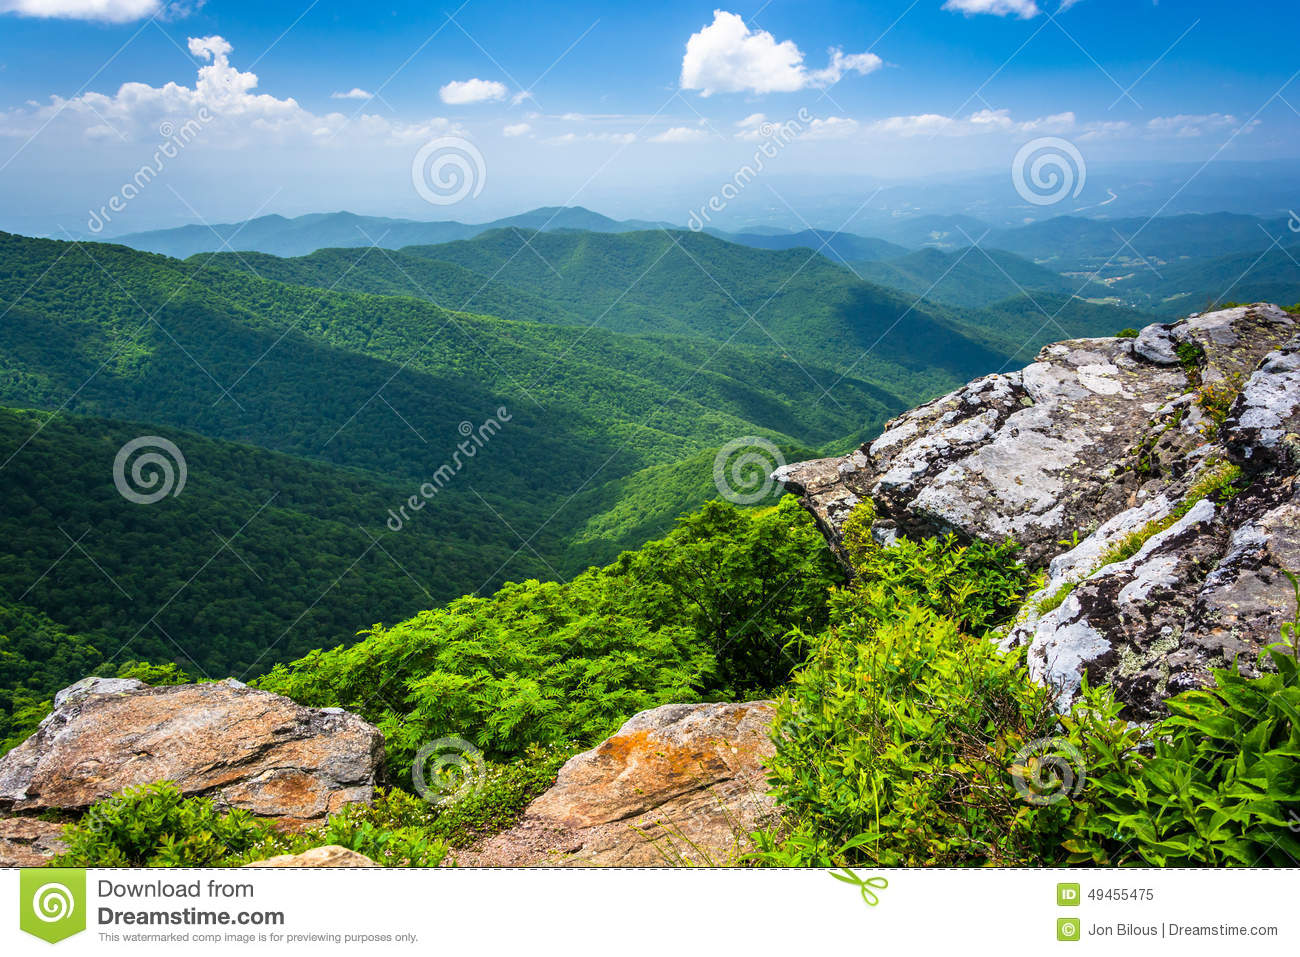 View of the Appalachian Mountains from Craggy Pinnacle, near the